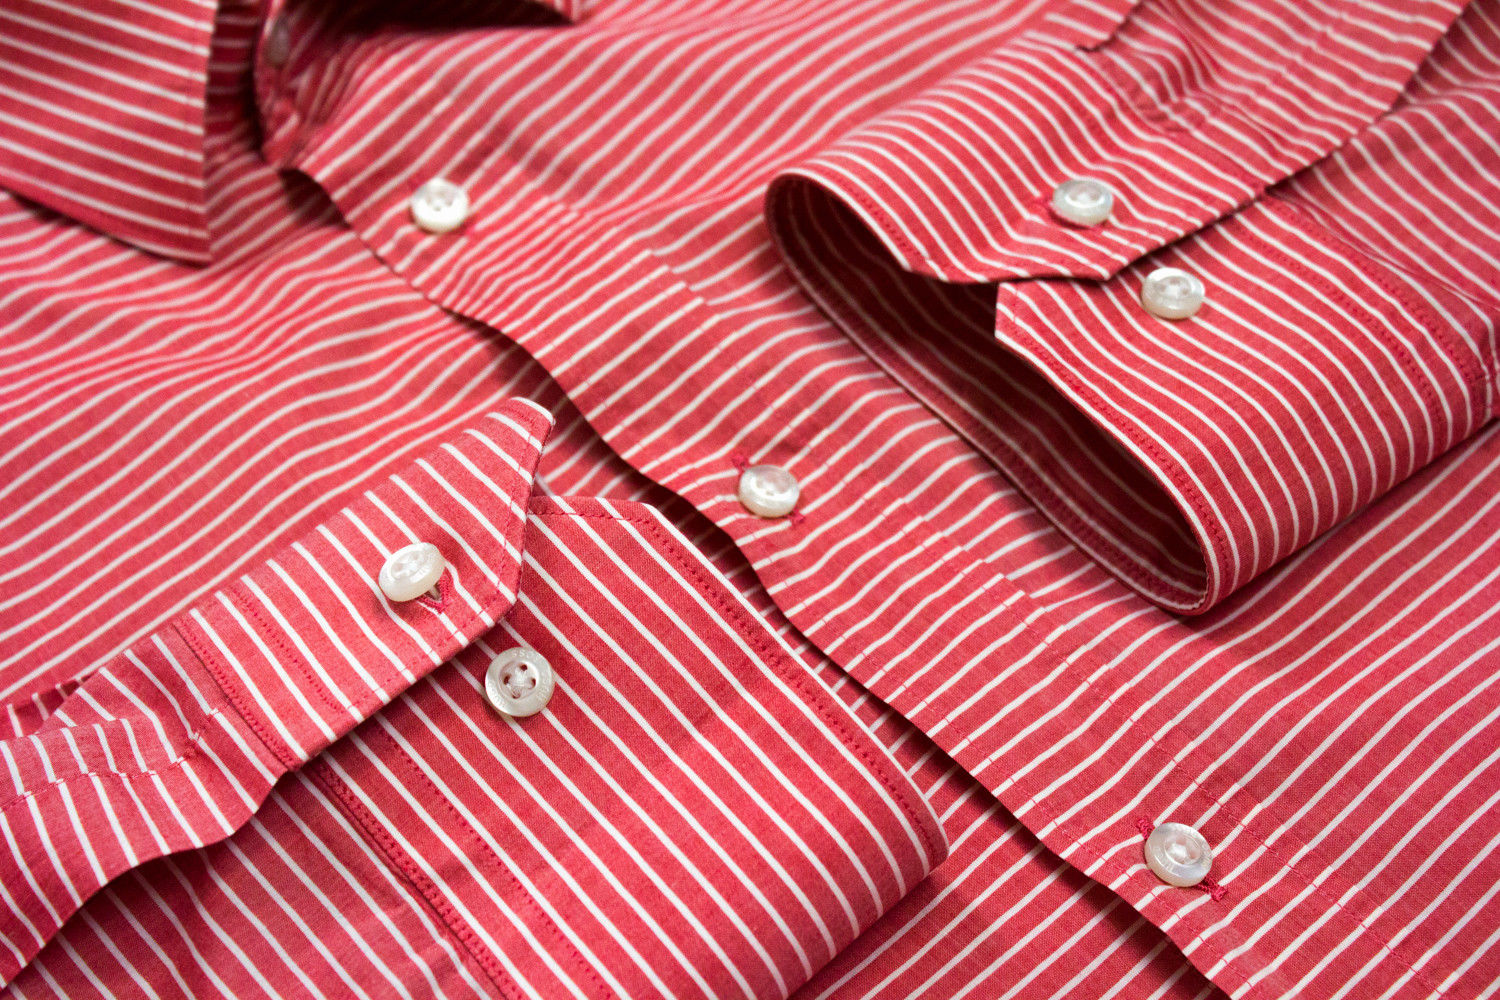 HUGO BOSS Red Label SLIM FIT Lightweight Cotton Striped Shirt SIZE L - secondfirst